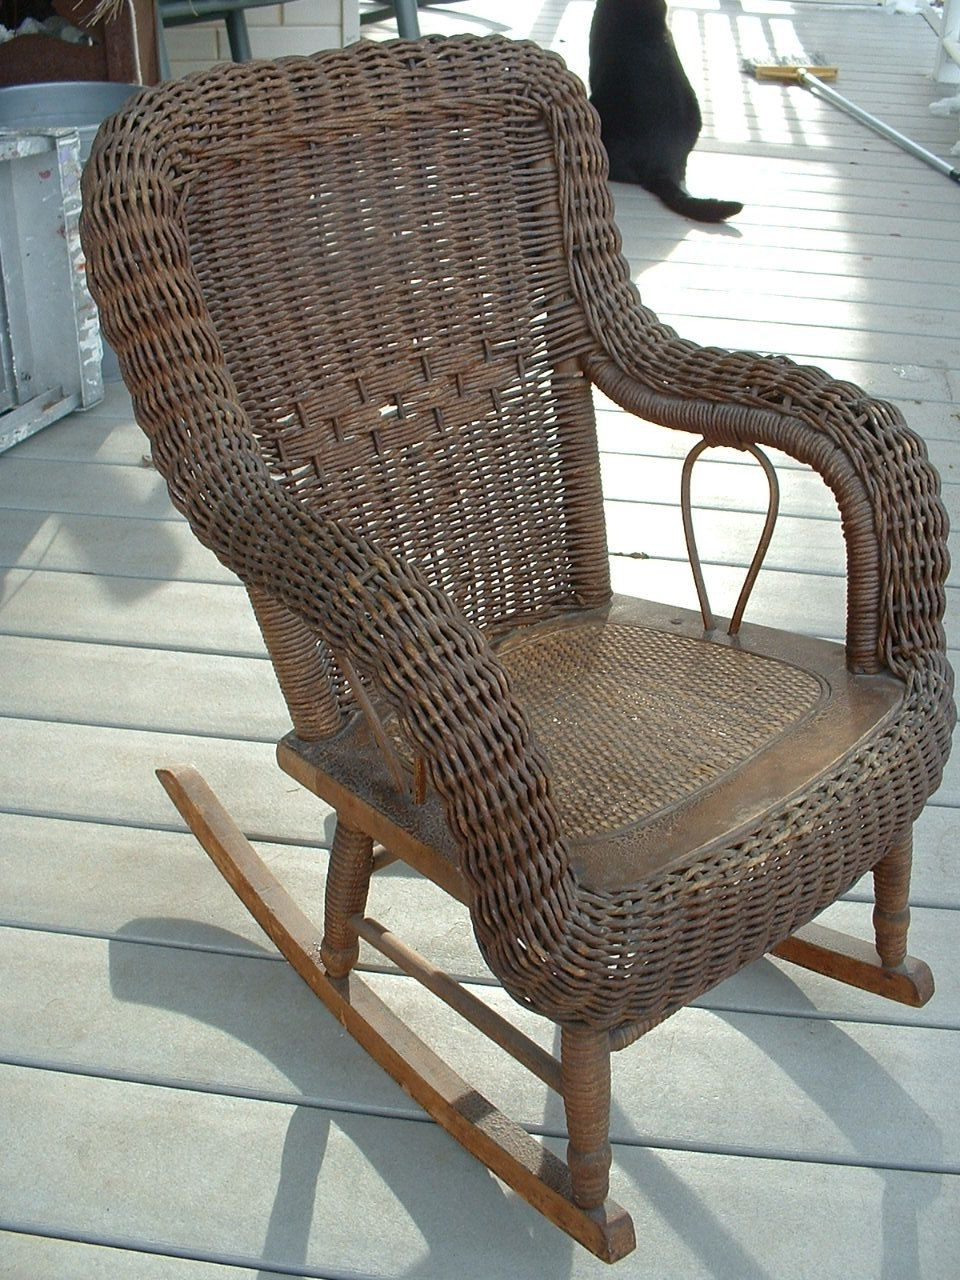 Wicker Furniture For Popular Antique Wicker Rocking Chairs With Springs (View 15 of 15)